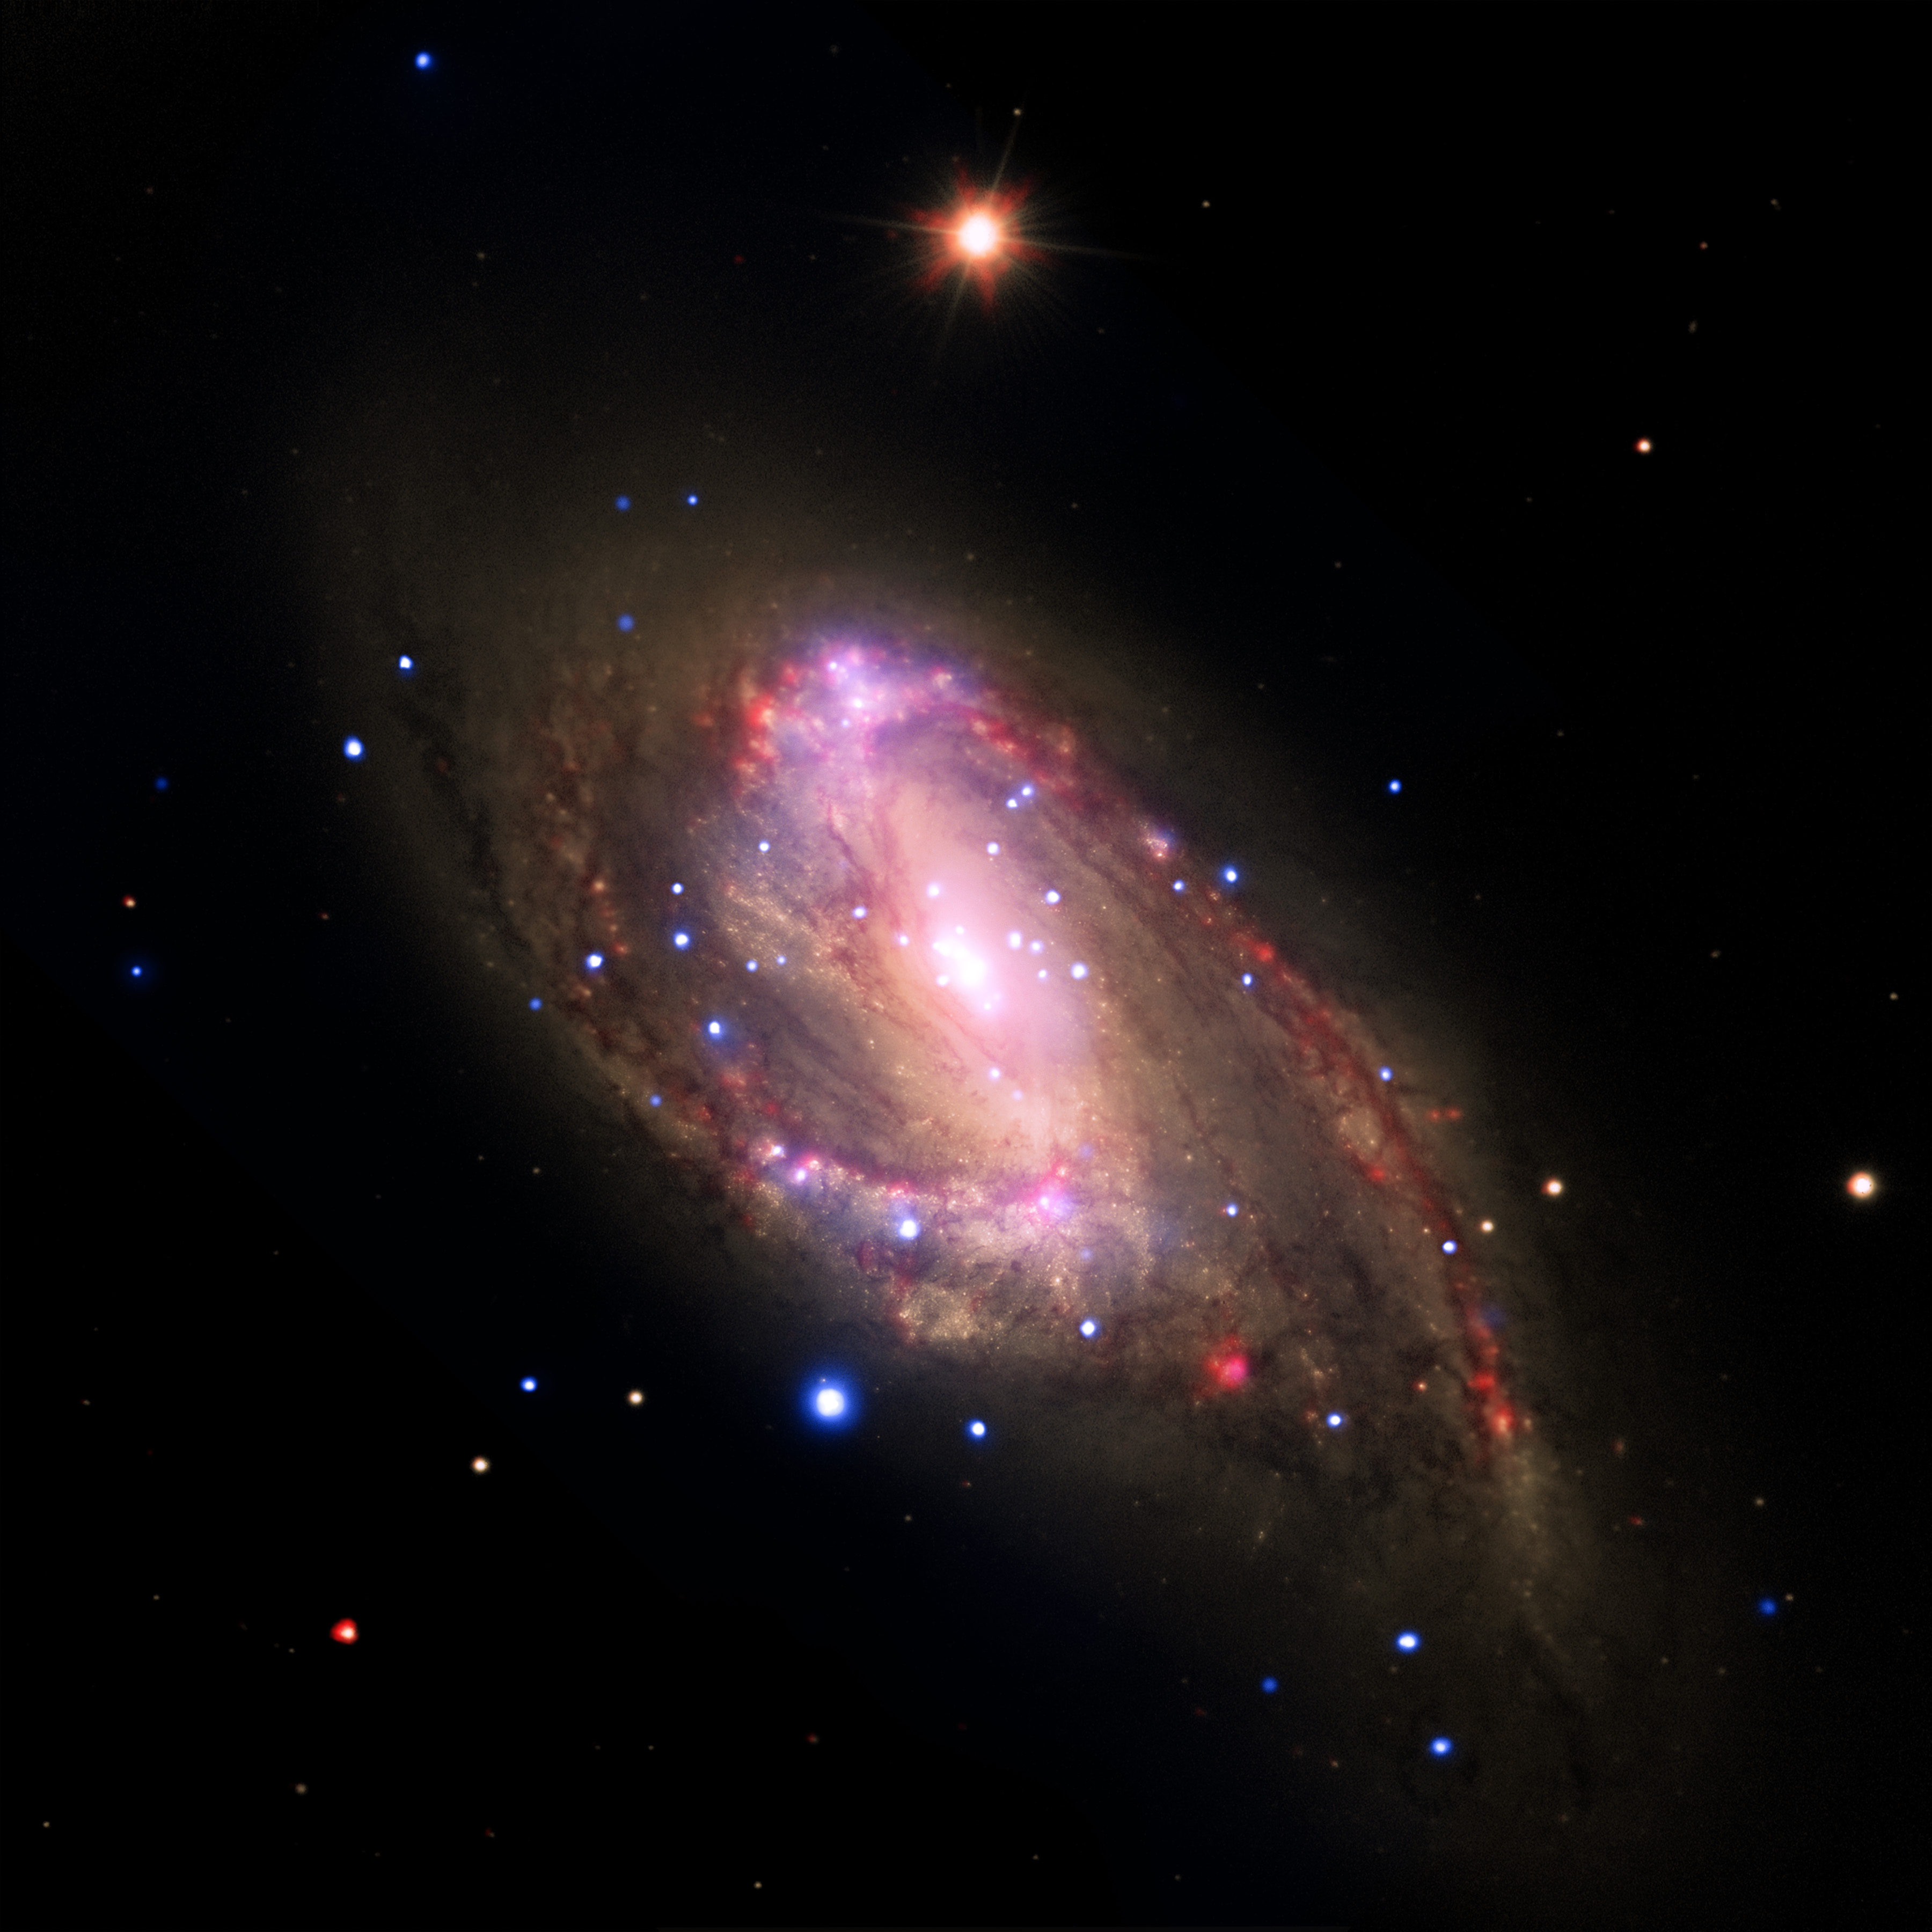 This multiwavelength image of the galaxy NGC 3627 contains X-rays from Chandra (blue), infrared data from Spitzer (red), and optical data from Hubble and the Very Large Telescope (yellow).  Astronomers conducted a survey of 62 galaxies, which included NGC 3627, to study the supermassive black holes at their centers.  Among this sample, 37 galaxies with X-ray sources are supermassive black hole candidates, and seven were not previously known. Confirming previous Chandra results, this study finds the fraction of galaxies hosting supermassive black holes is much higher than in optical searches for black holes that are relatively inactive.